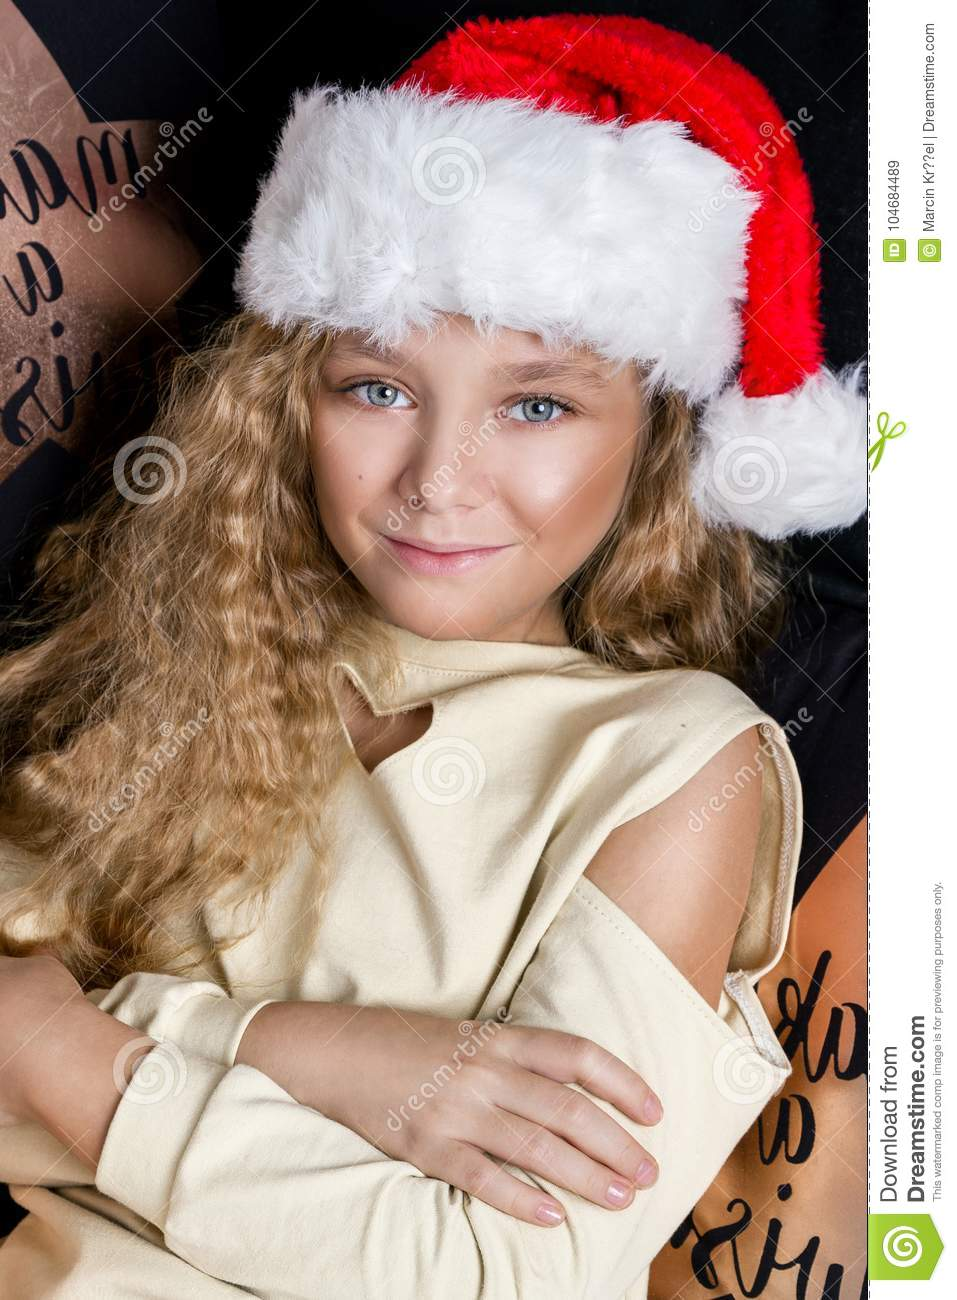 e6b1b252e Stunning beautiful little girl with long blond hair lying on a bed in a  Santa Claus hat and joyfully look into the lens at Christmas time